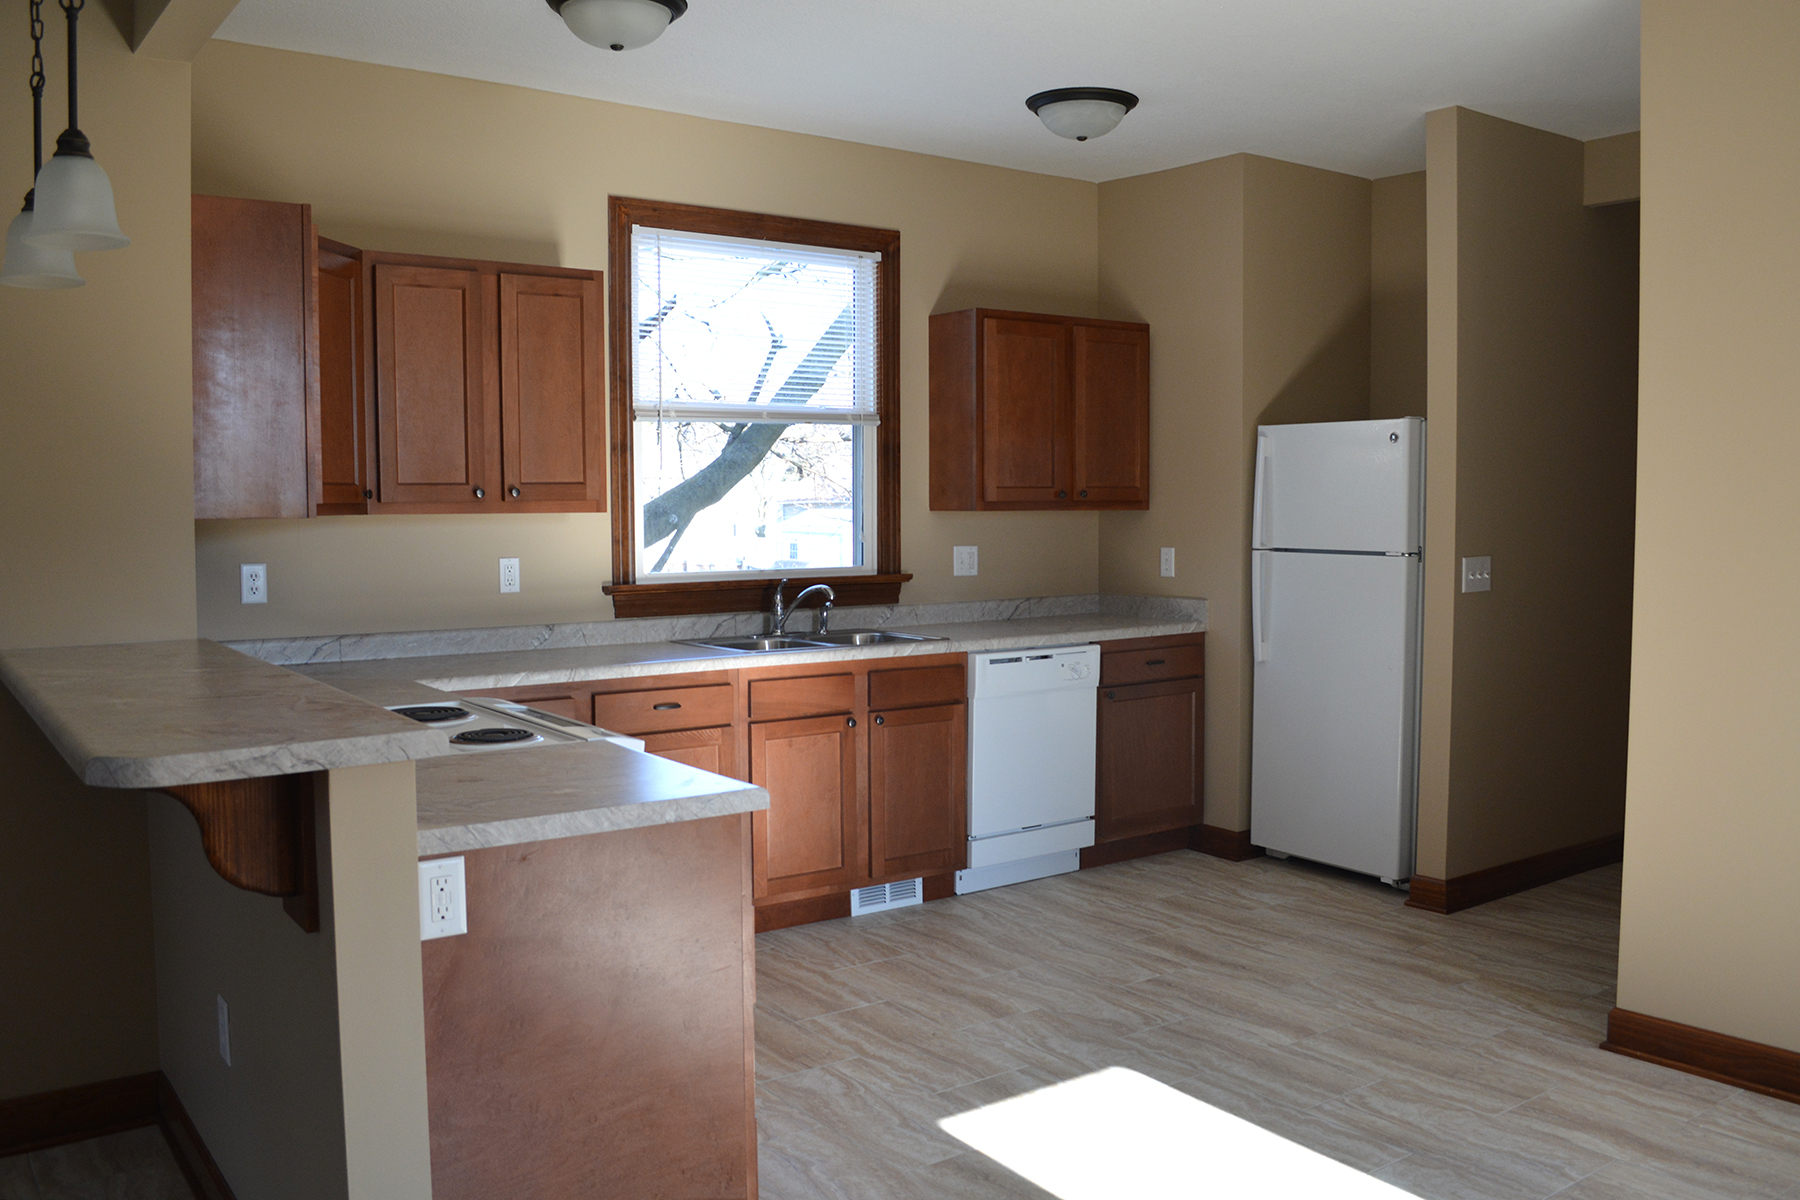 AFTER: Kitchen and hall